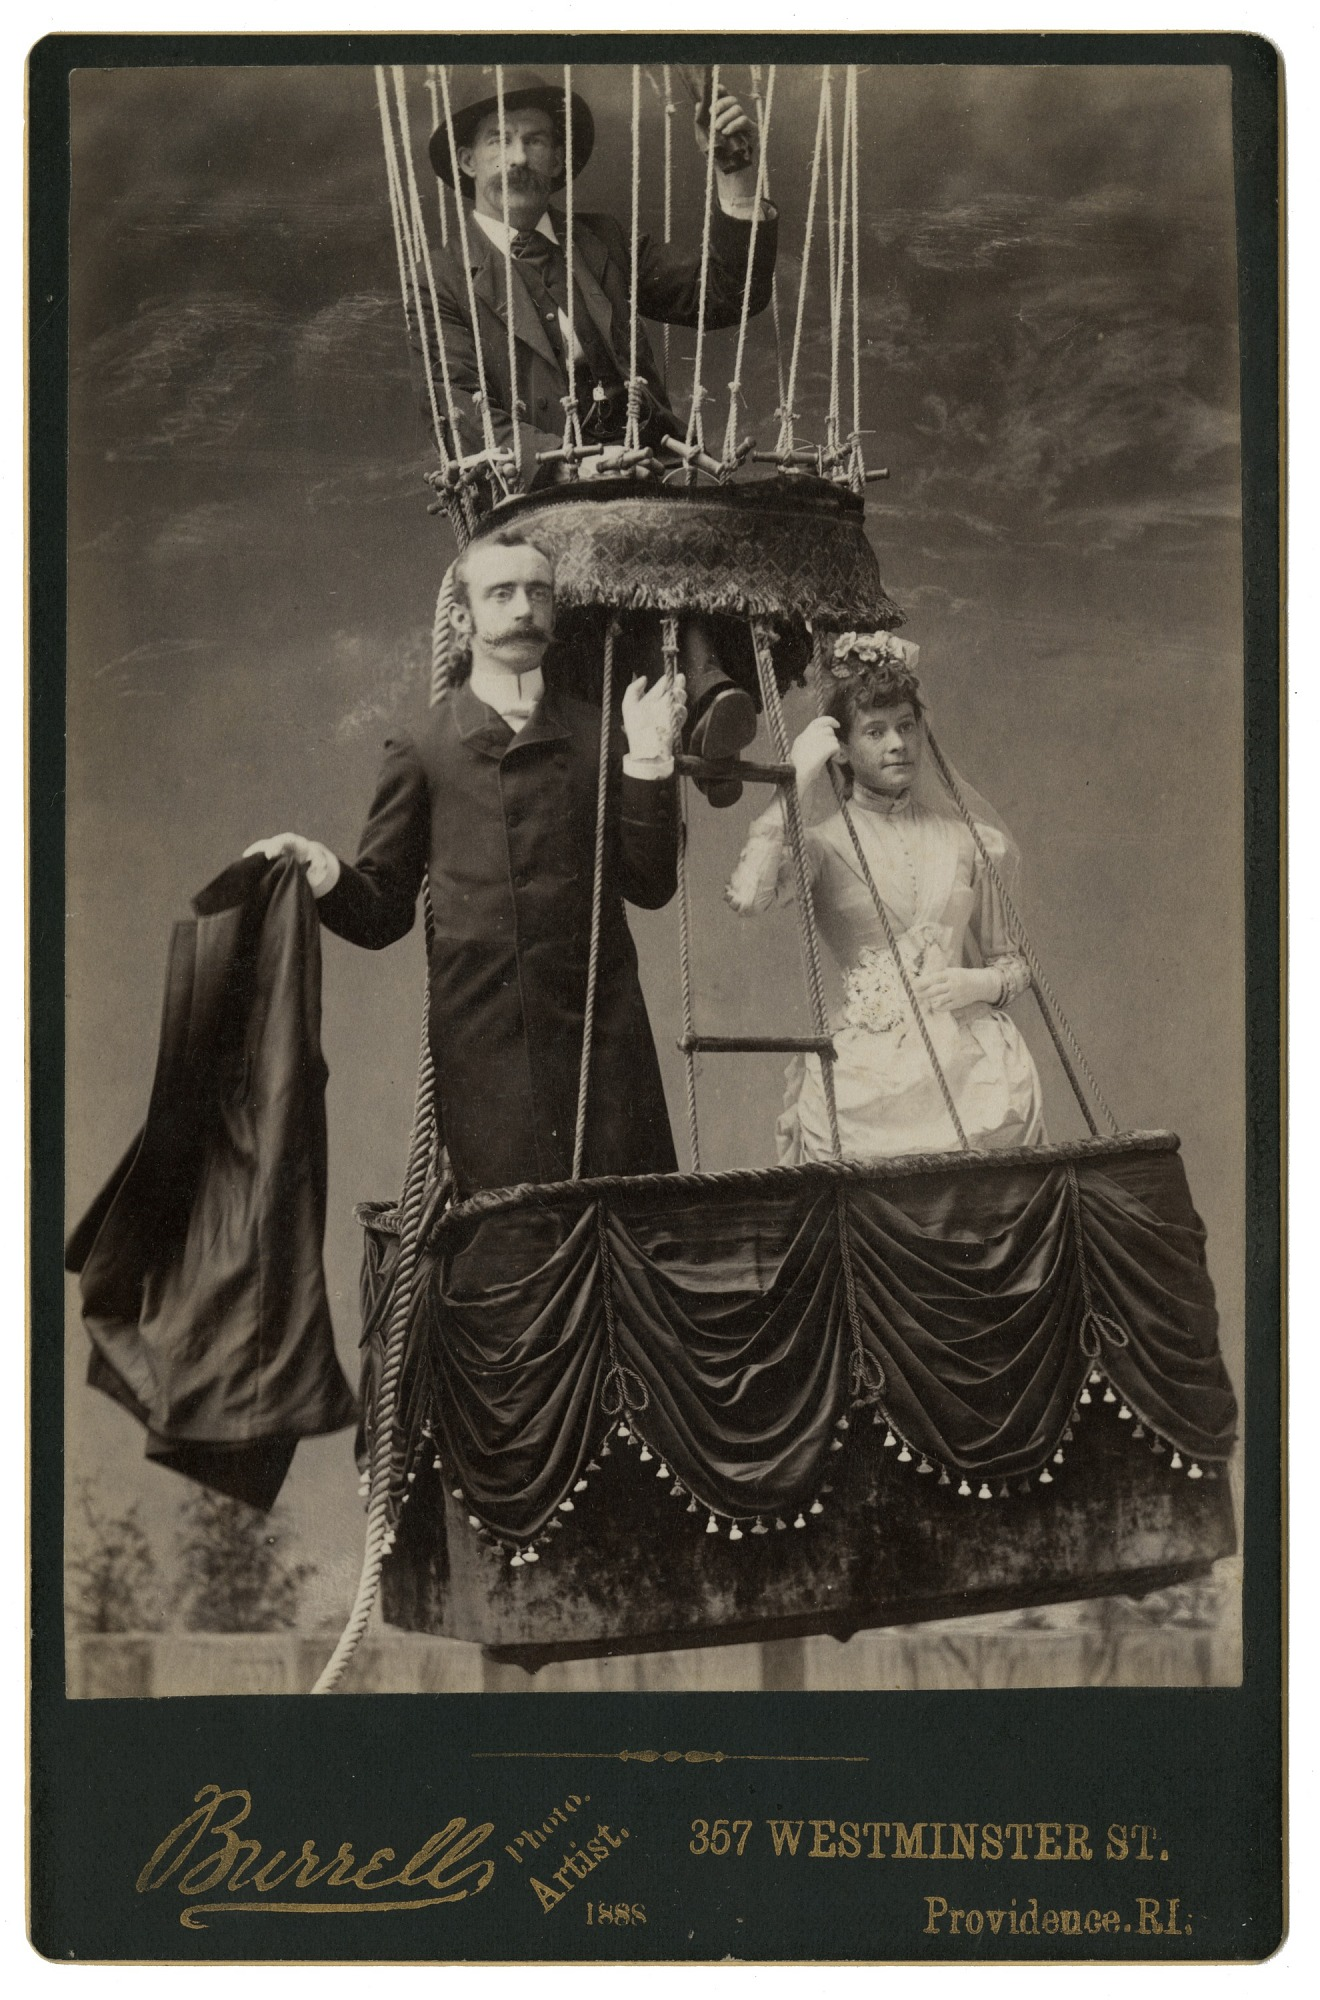 images for LTA, Balloons, USA, Allen (James), Balloon Wedding (1888) (Krainik Coll). photograph